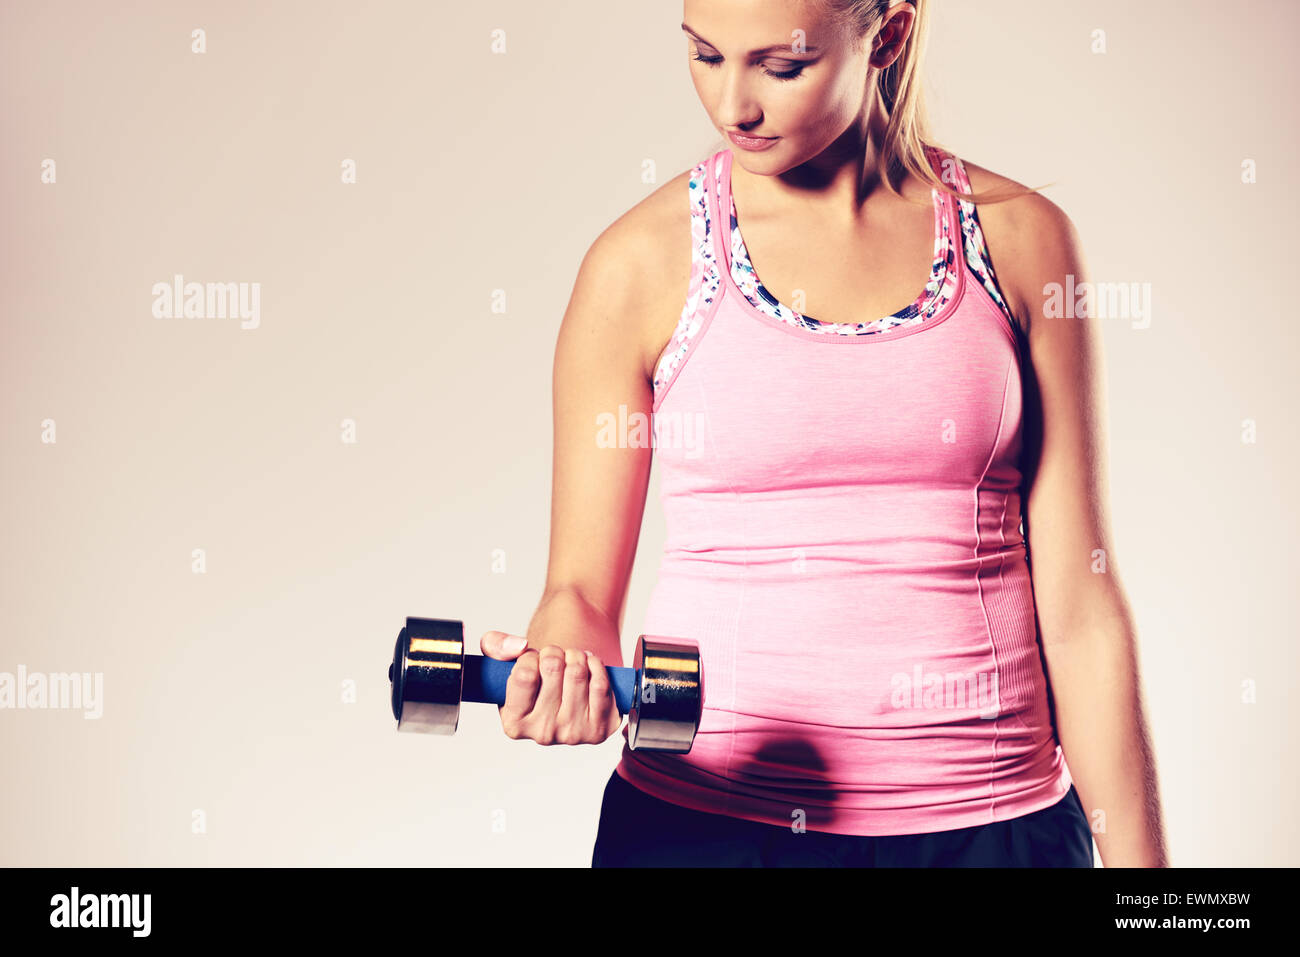 Young woman standing working out upper body, doing a bicep curl. - Stock Image